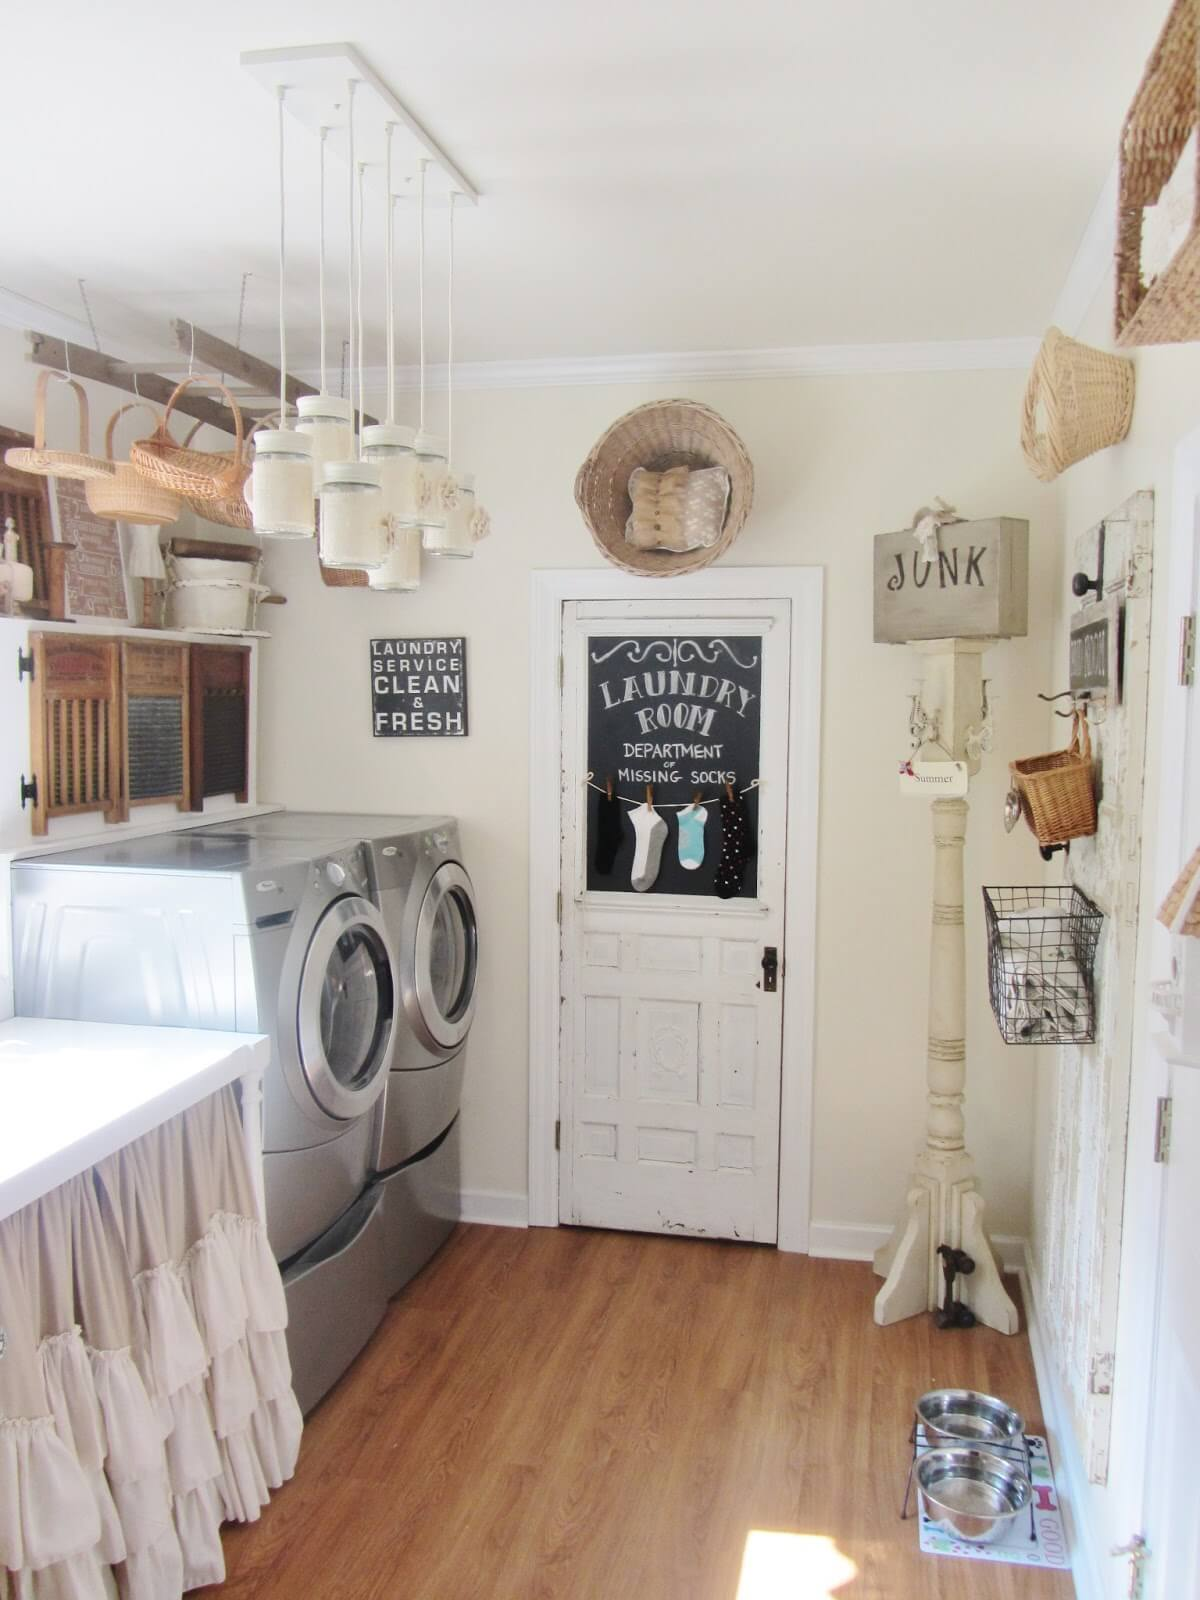 25 Best Vintage Laundry Room Decor Ideas and Designs for 2020 on Laundry Room Decor  id=29239